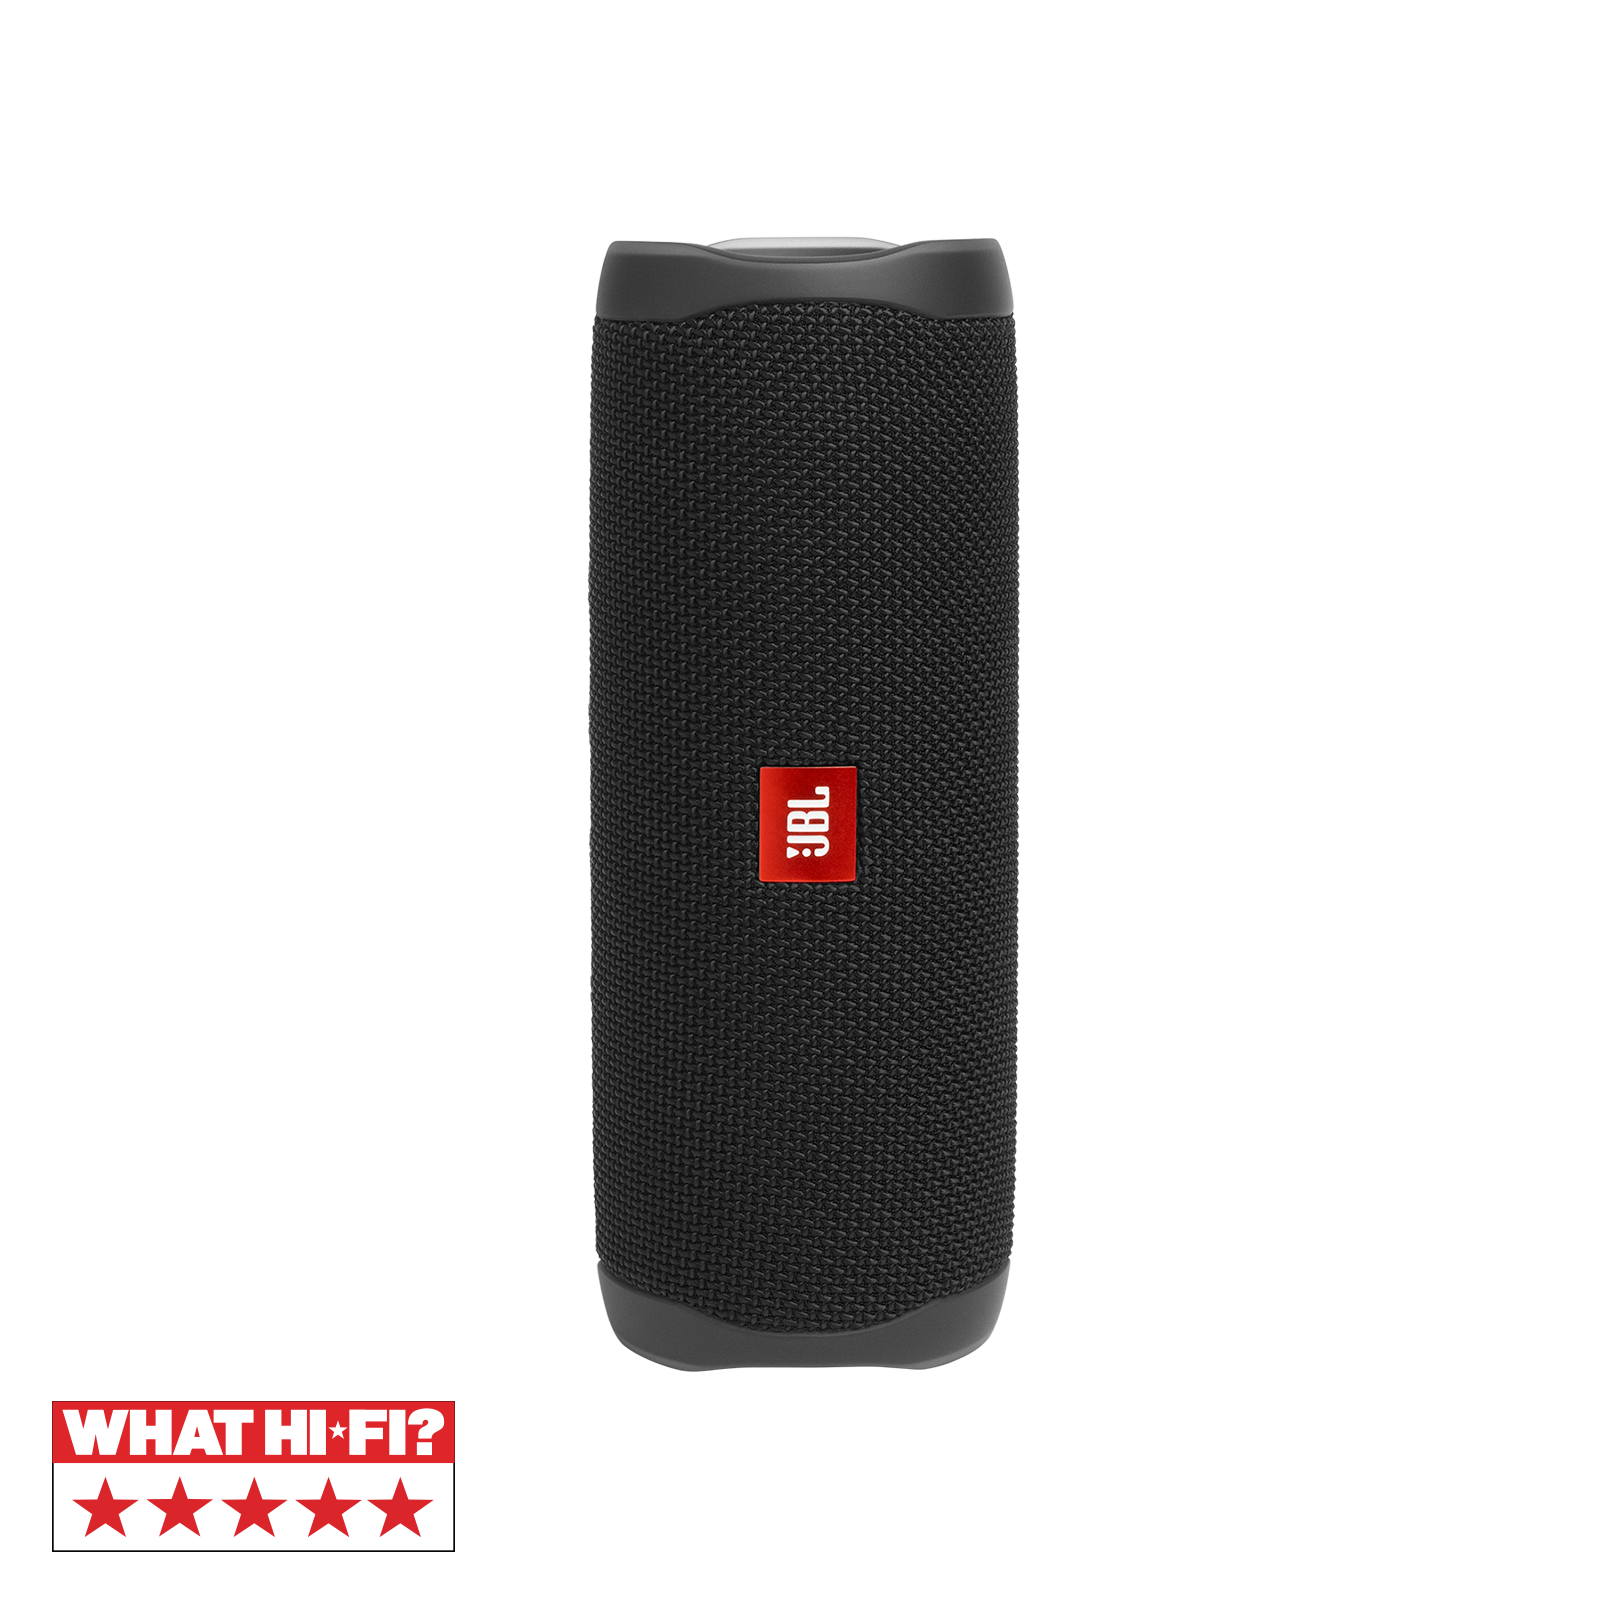 JBL_Flip5_Product%20Photo_Hero_Midnight%20Black.png&width=400&height=500